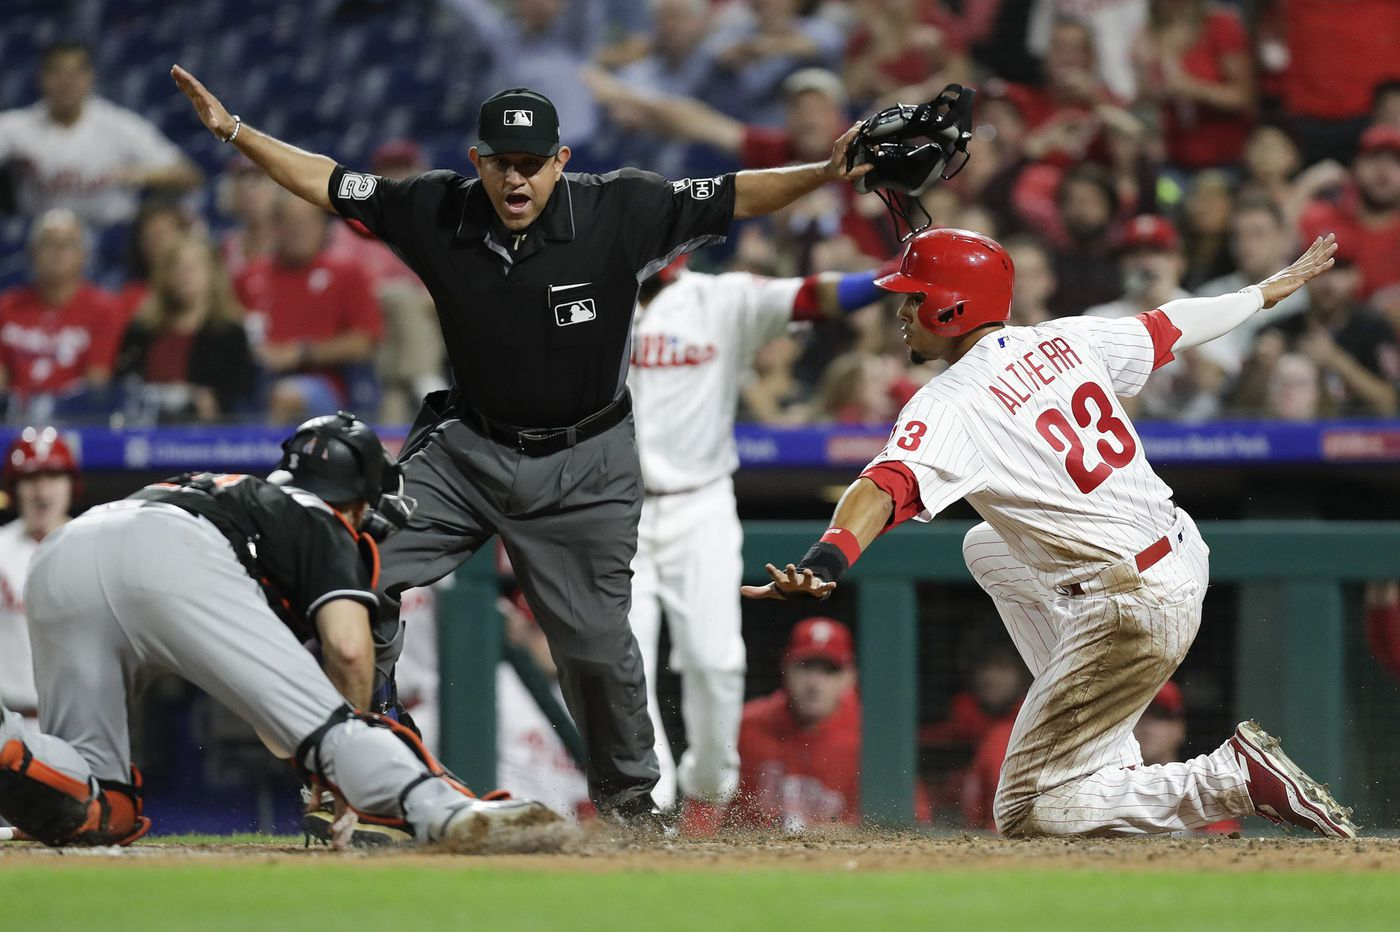 Phillies blast Marlins 14-2, still have 'a chip and a chair' according to Gabe Kapler